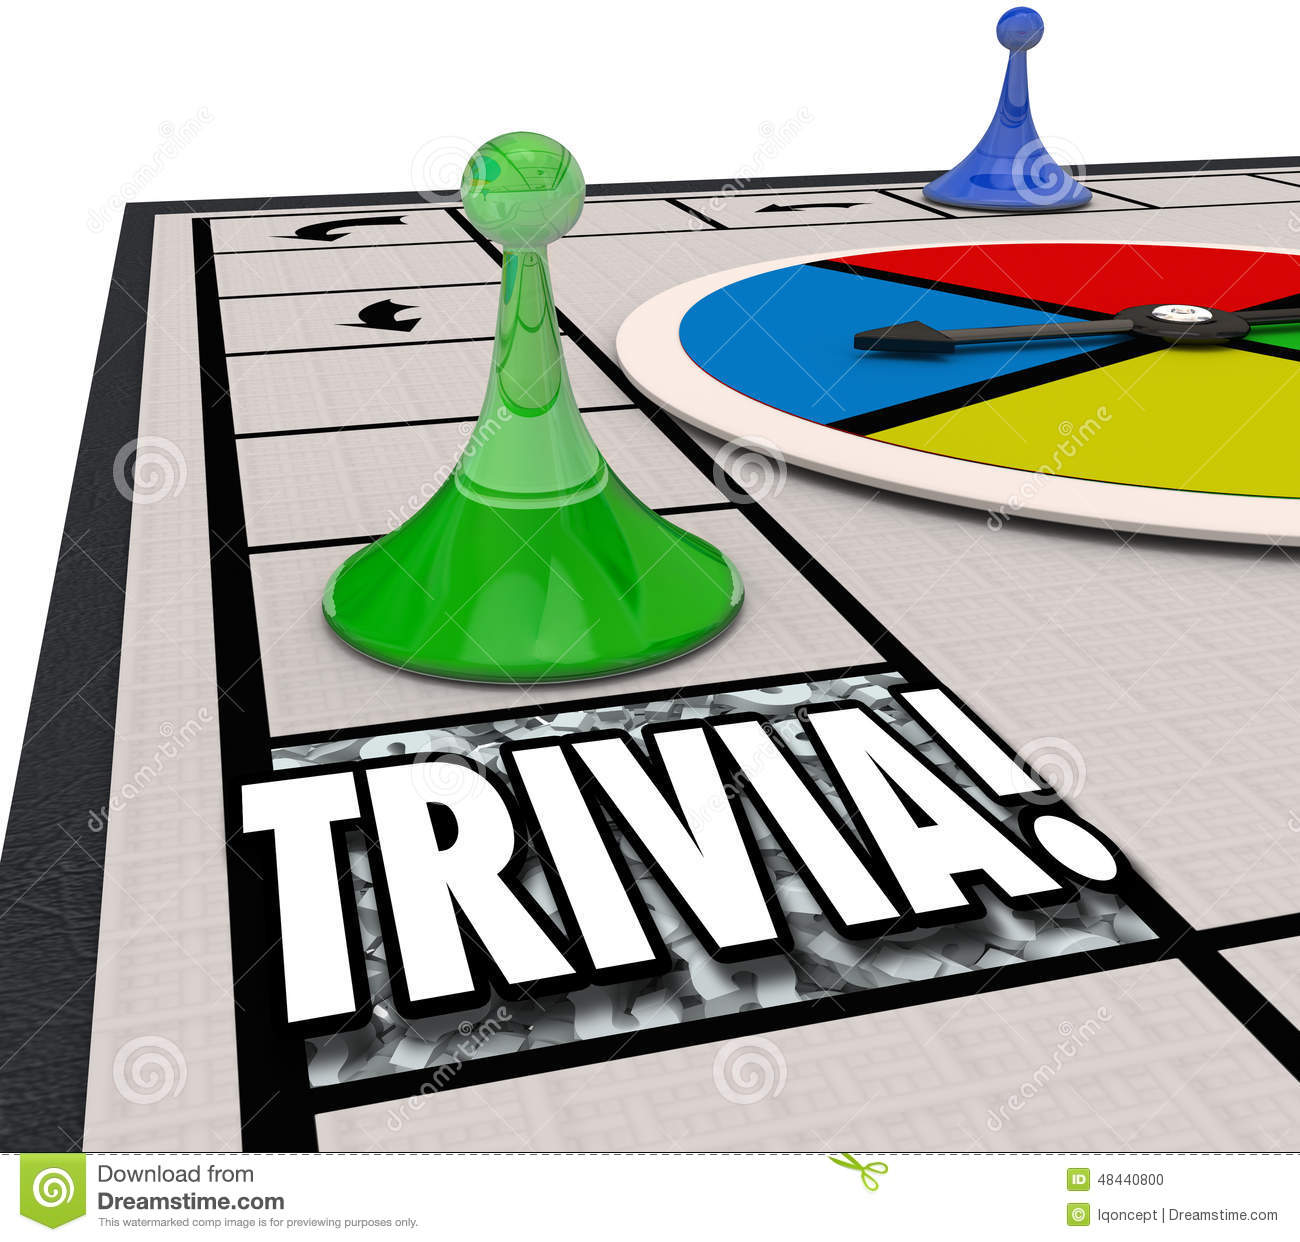 Clip Art Word Games : Trivia board game fun knowledge challenge playing quiz